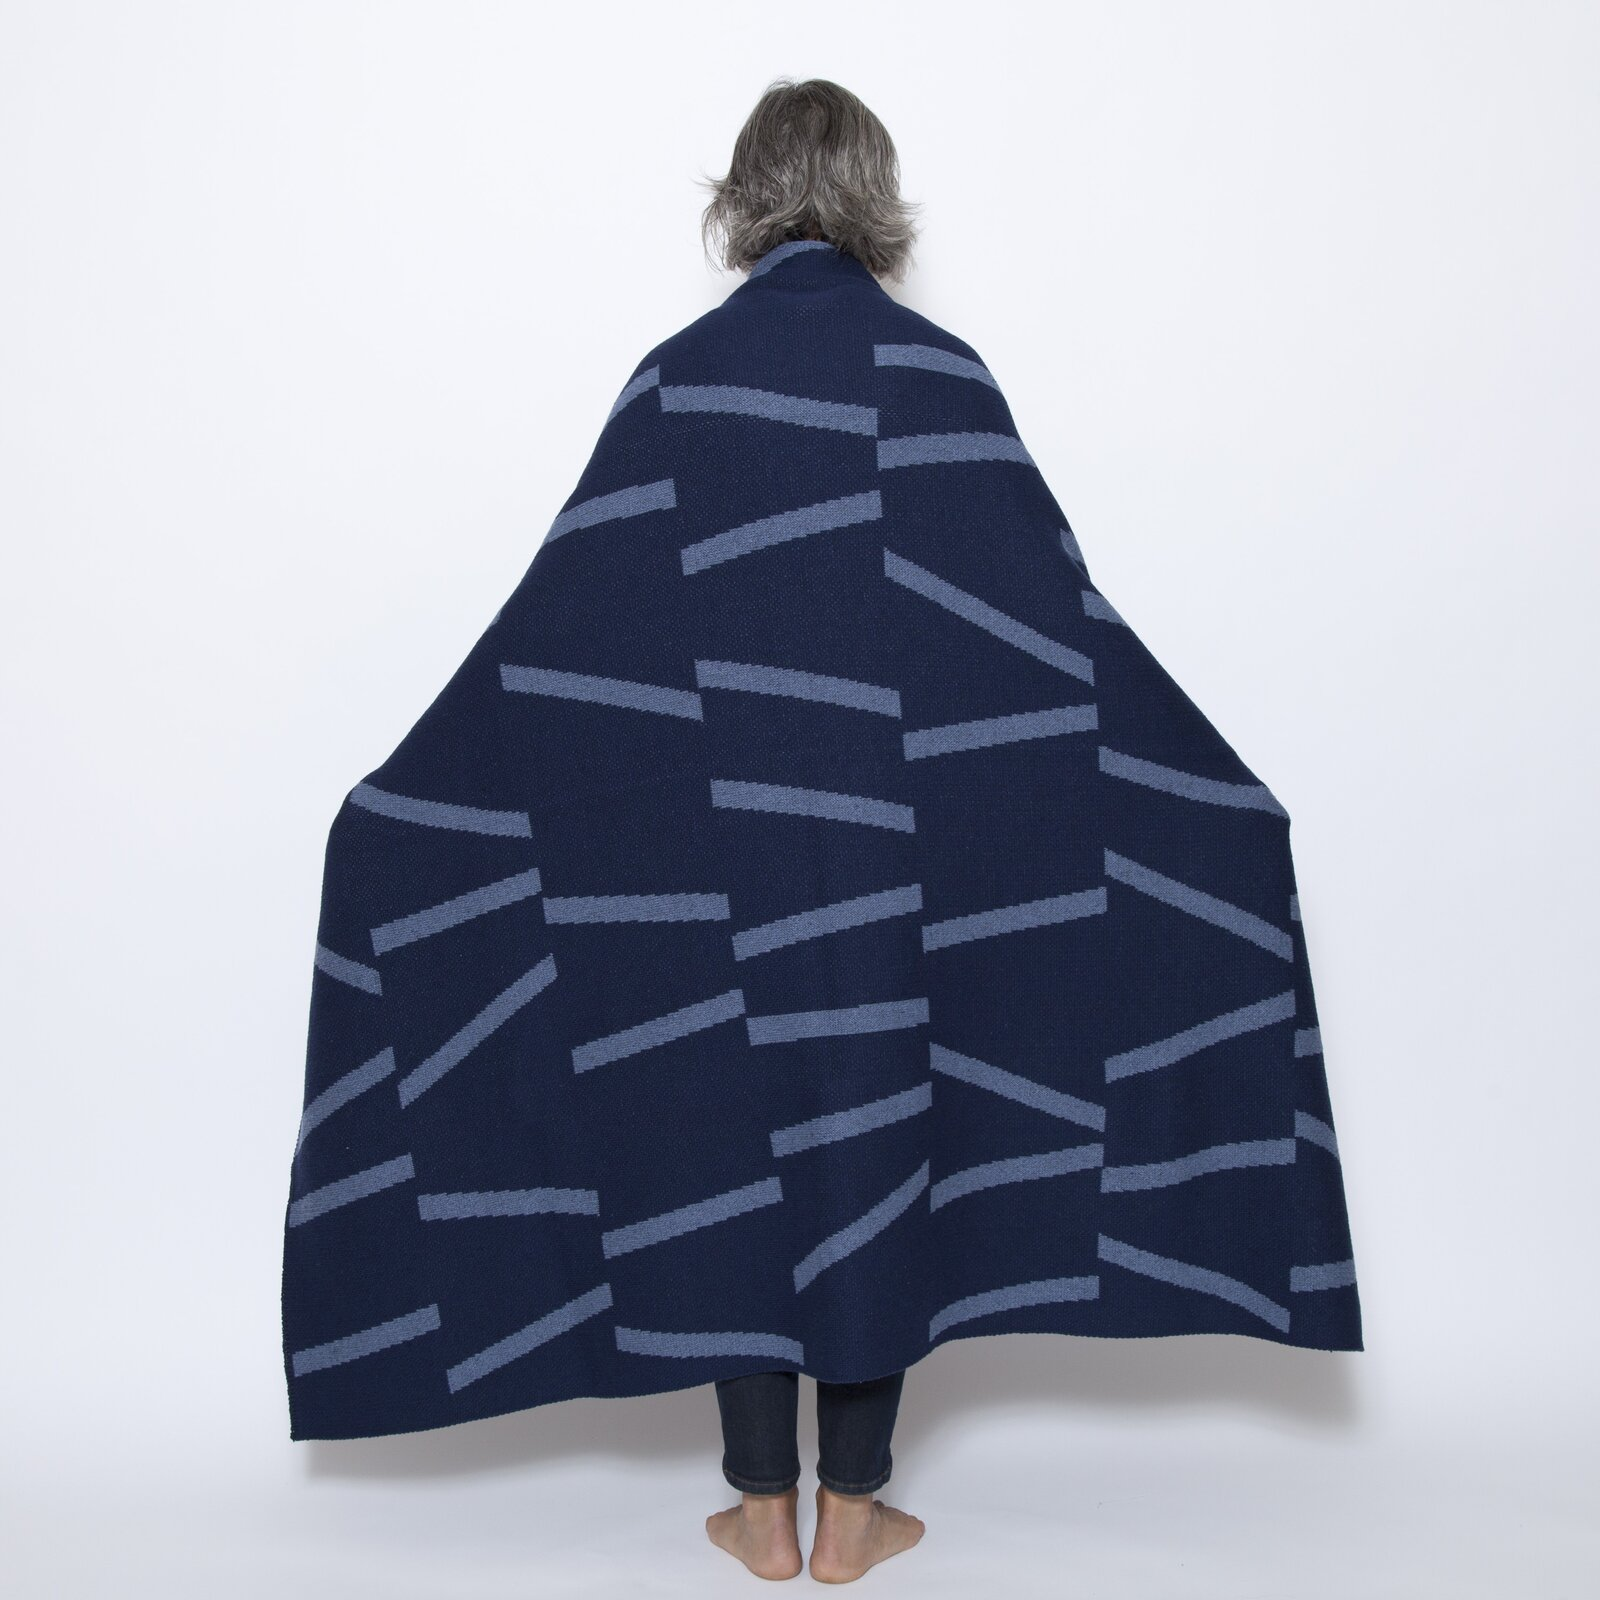 The Eco Broken Lines Throw is by Elodie Blanchard, another Saturday Green designer.  Photo 9 of 11 in Designer to Know: Saturday Green